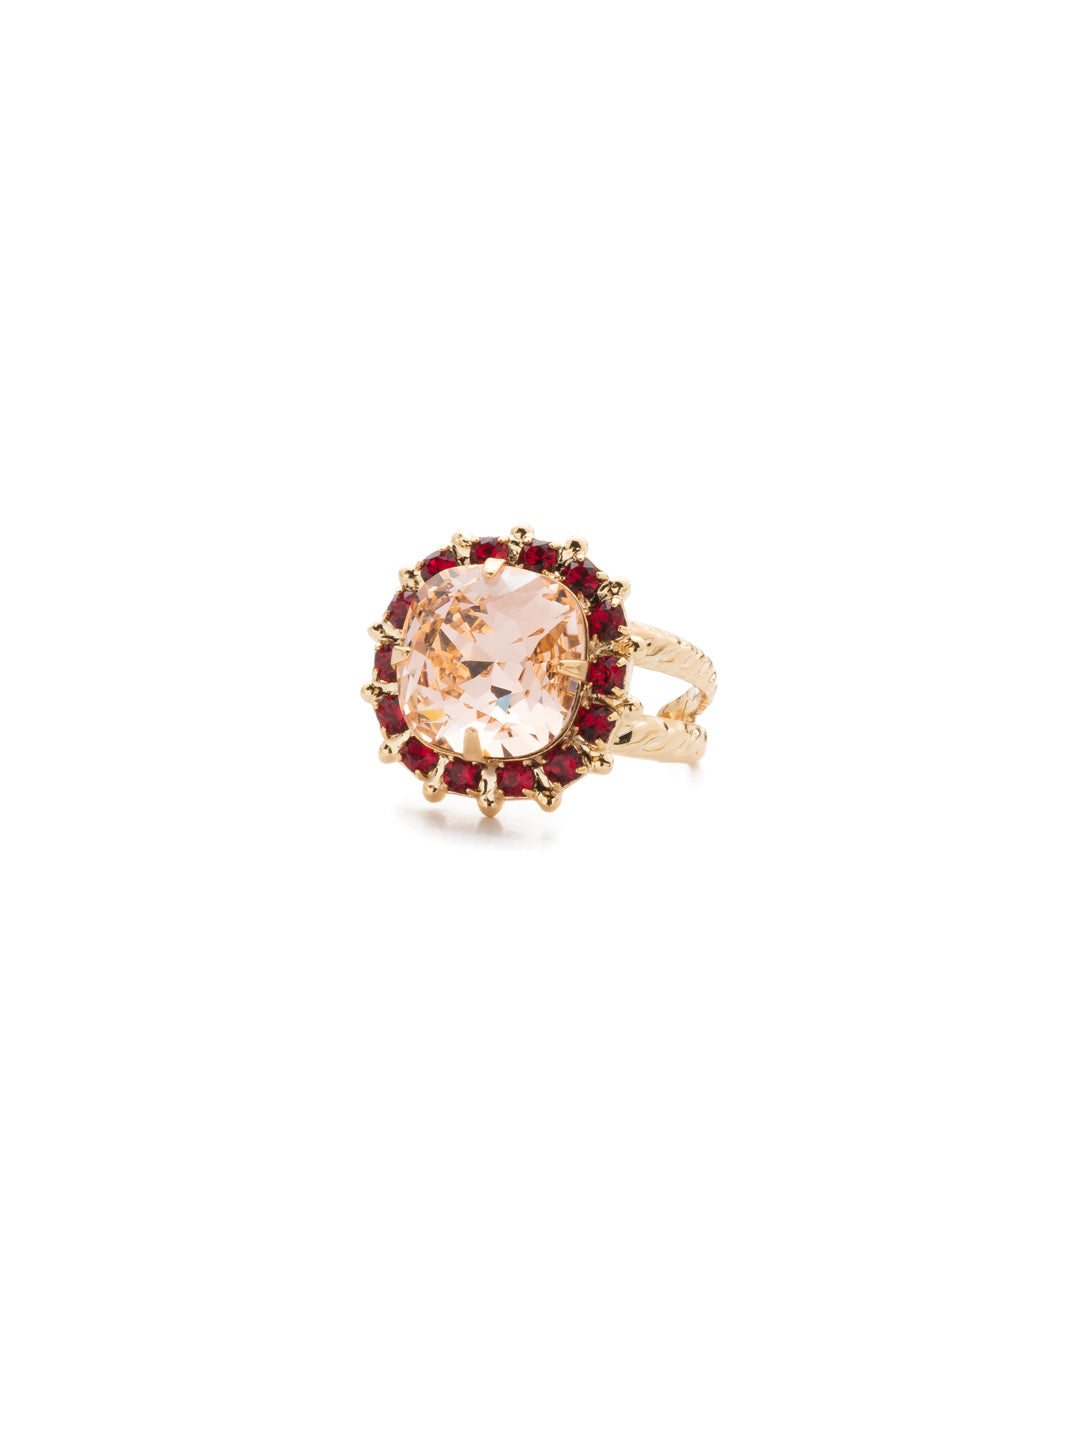 Cushion-Cut Cocktail Ring - RCR112BGSRC